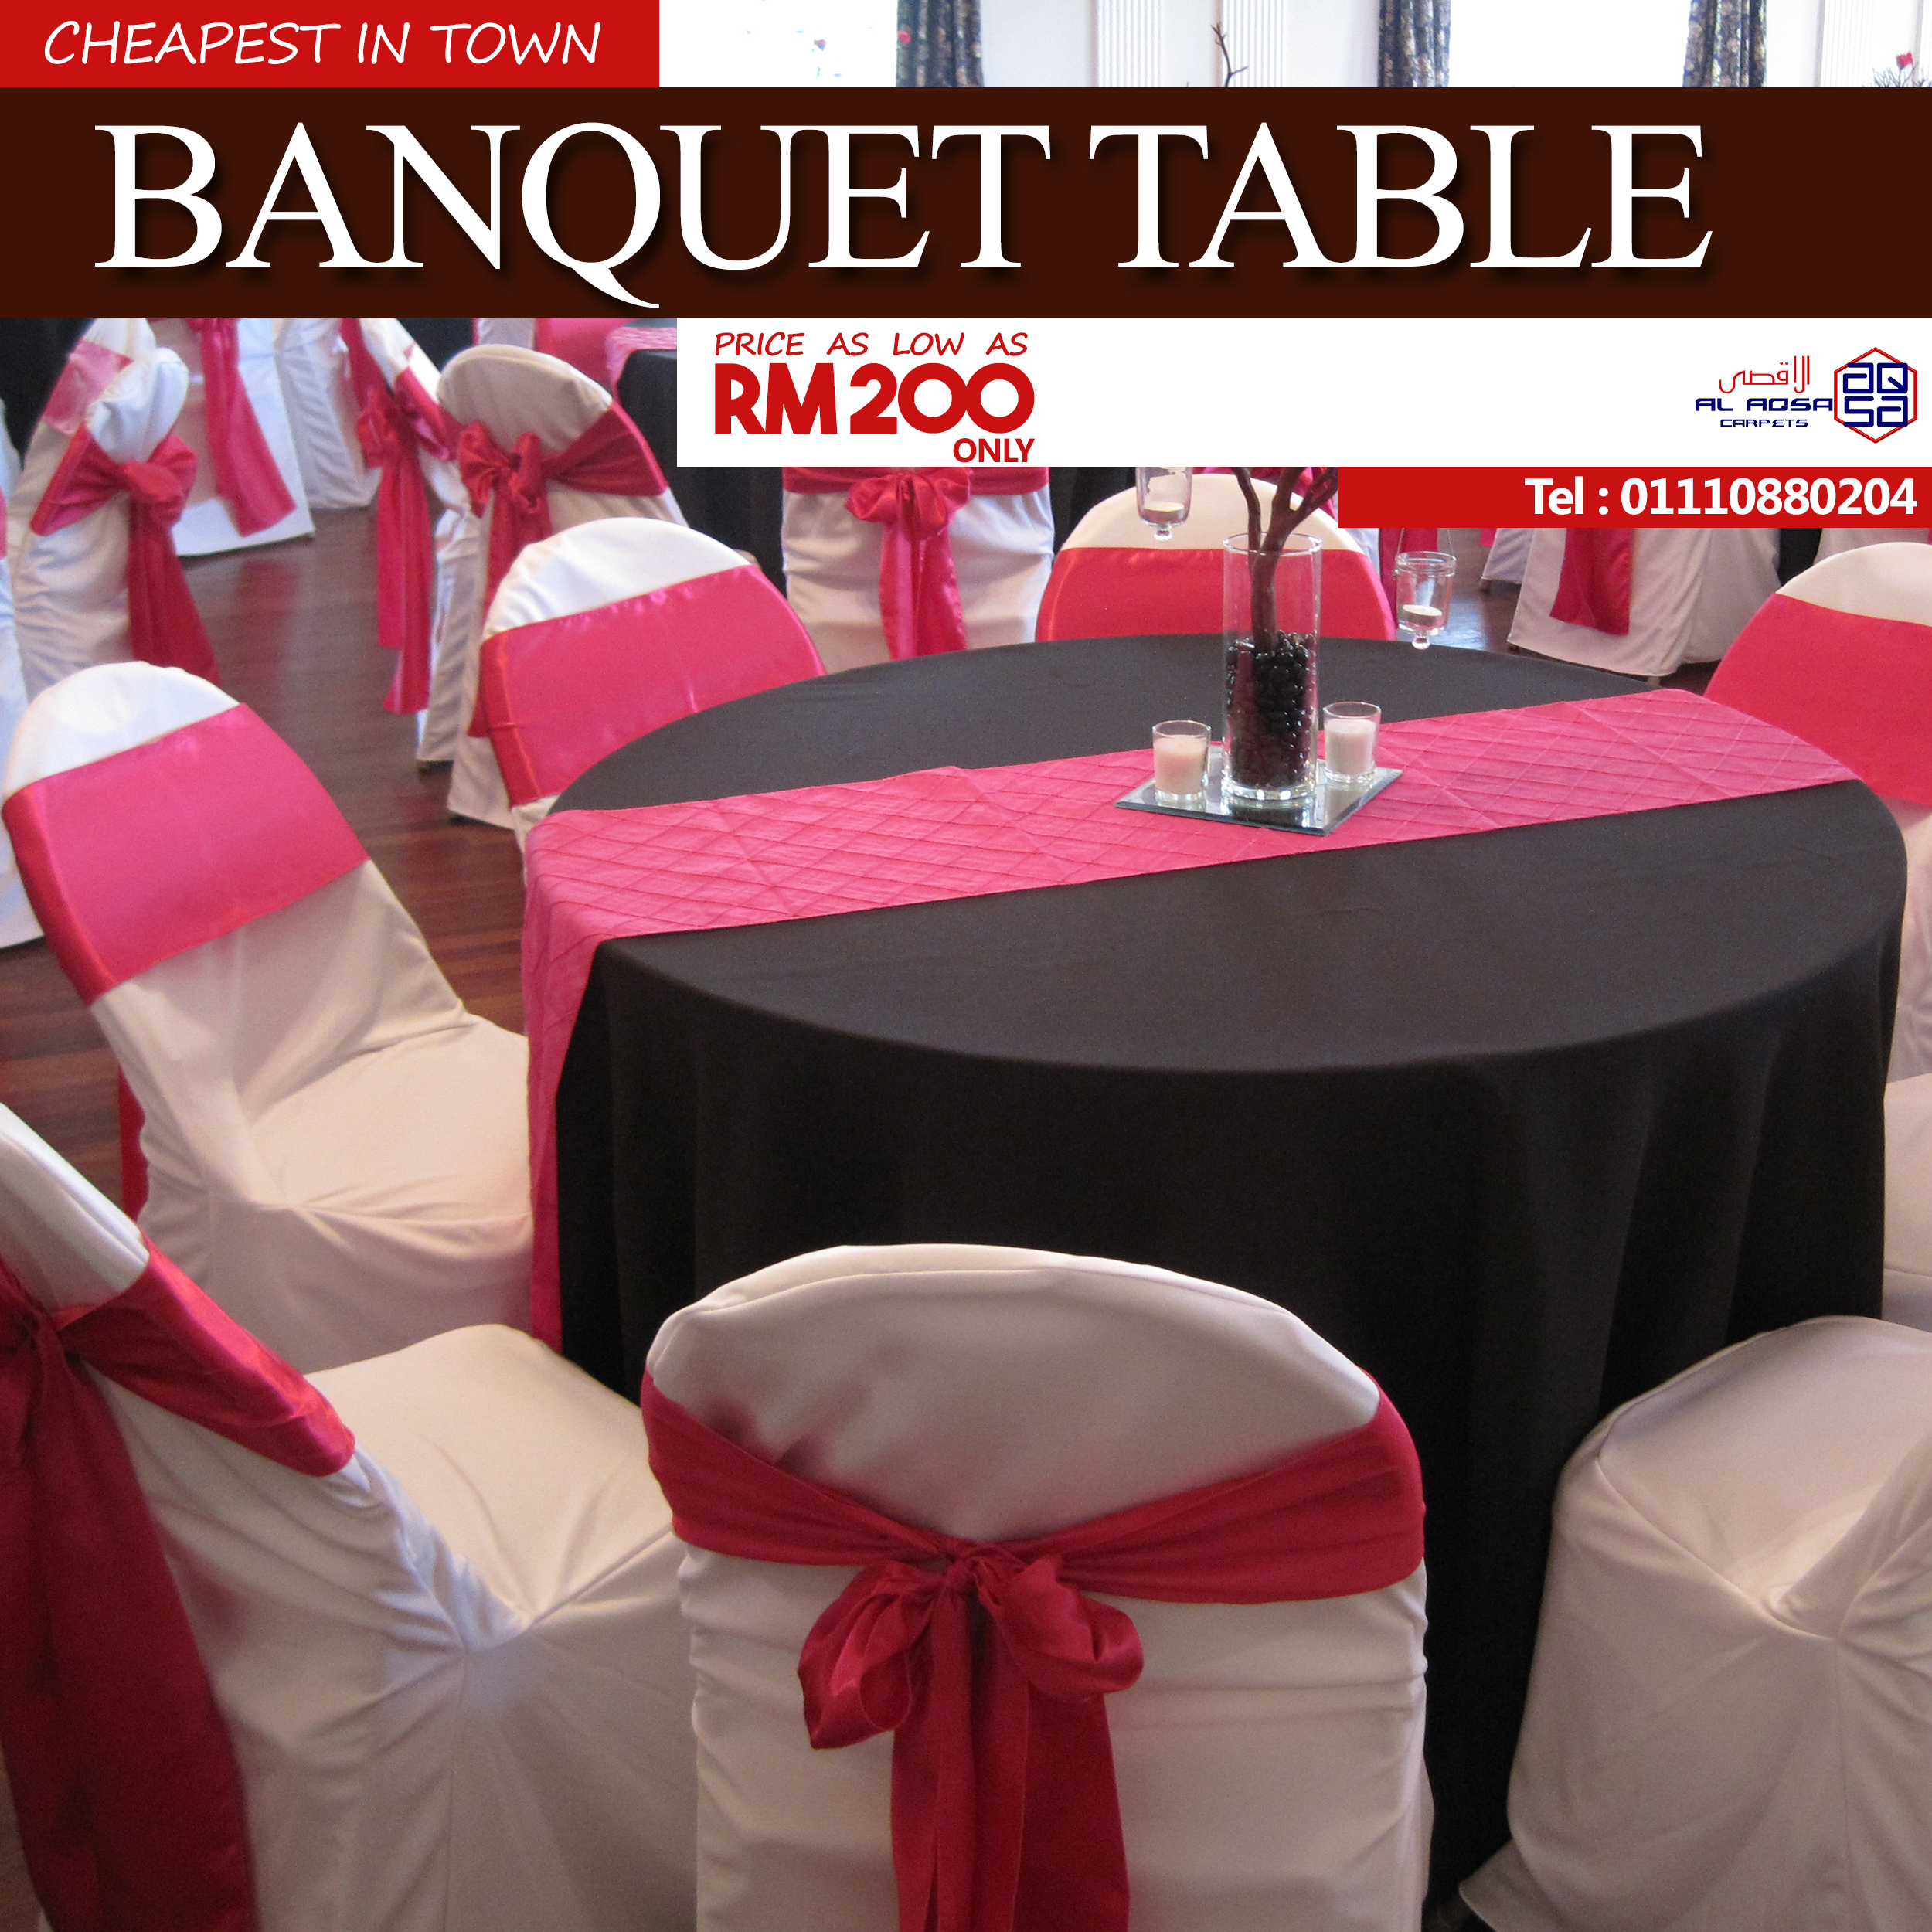 Banquet Tables For Sale Best Quality At Cheapest Price